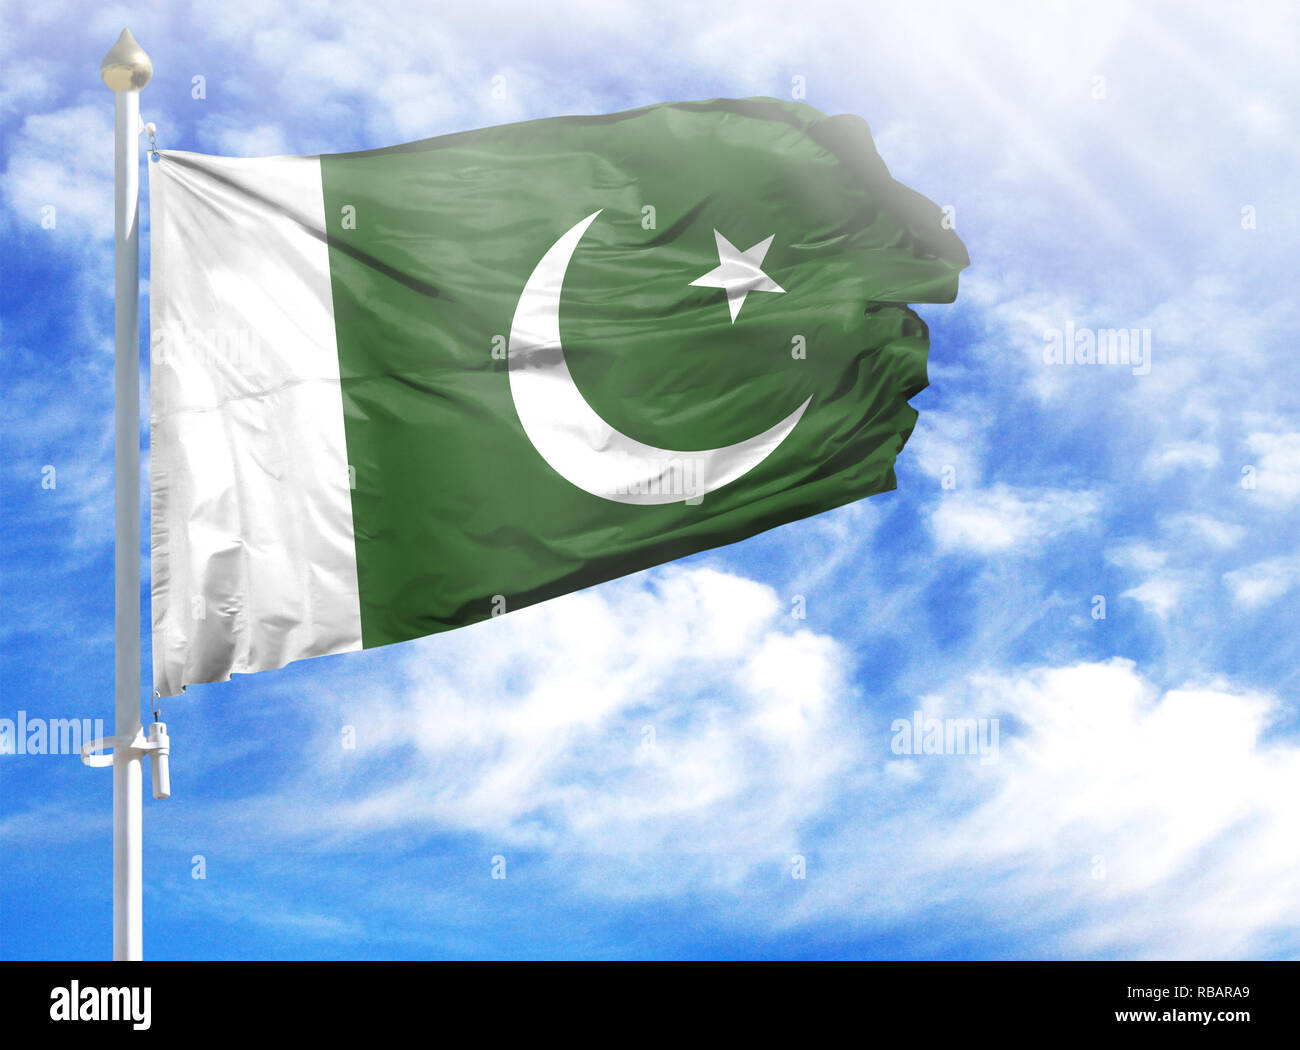 National flag of Pakistan on a flagpole in front of blue sky. - Stock Image